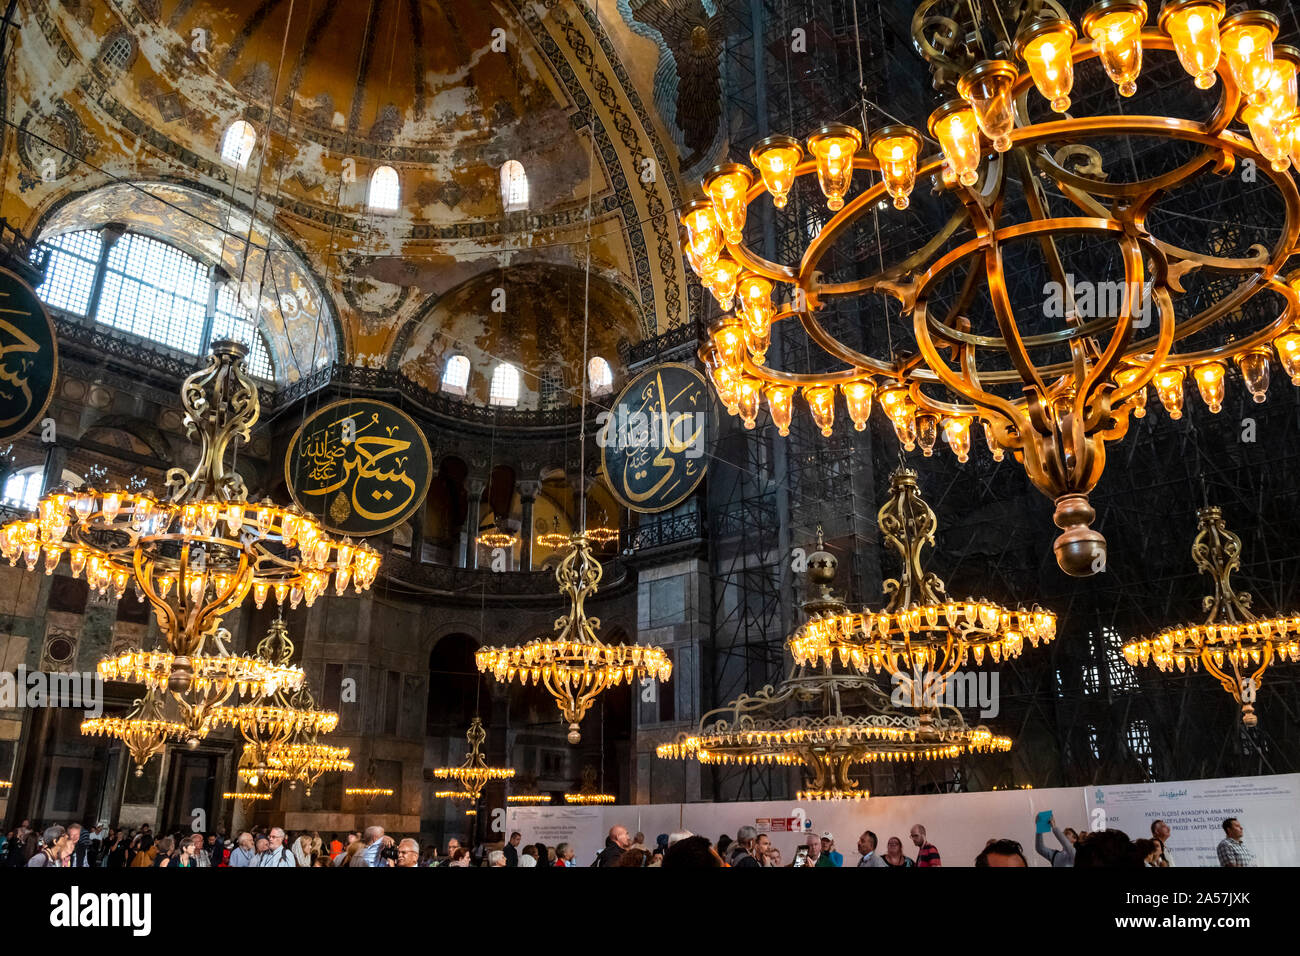 View of the ceiling and upper level as tourists gather under the chandeliers of the Hagia Sophia museum, a former Muslim Mosque, in Istanbul, Turkey. Stock Photo